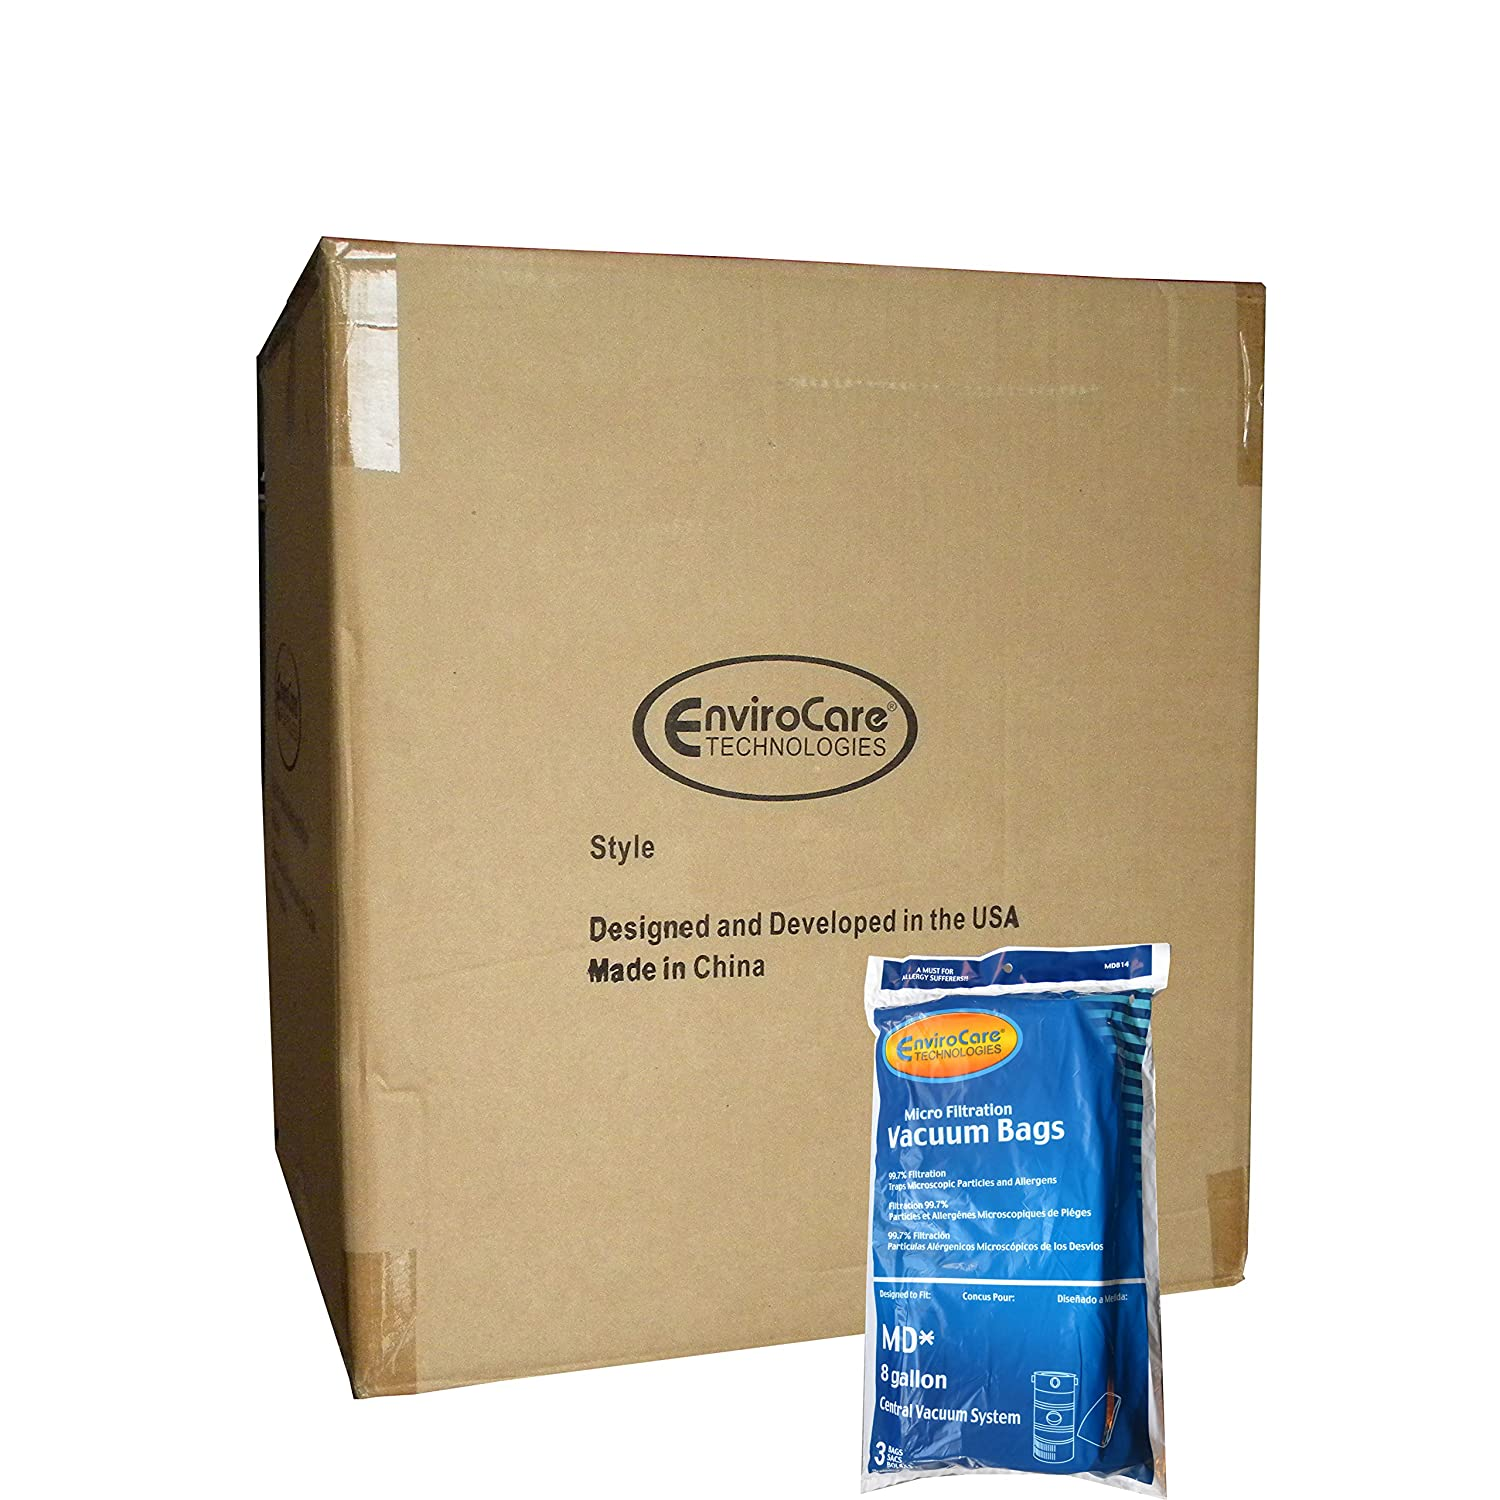 Amazon.com - Half Case of Modern Day MD 8 Gallon Microfiltration Central Vacuum Cleaner Bags -